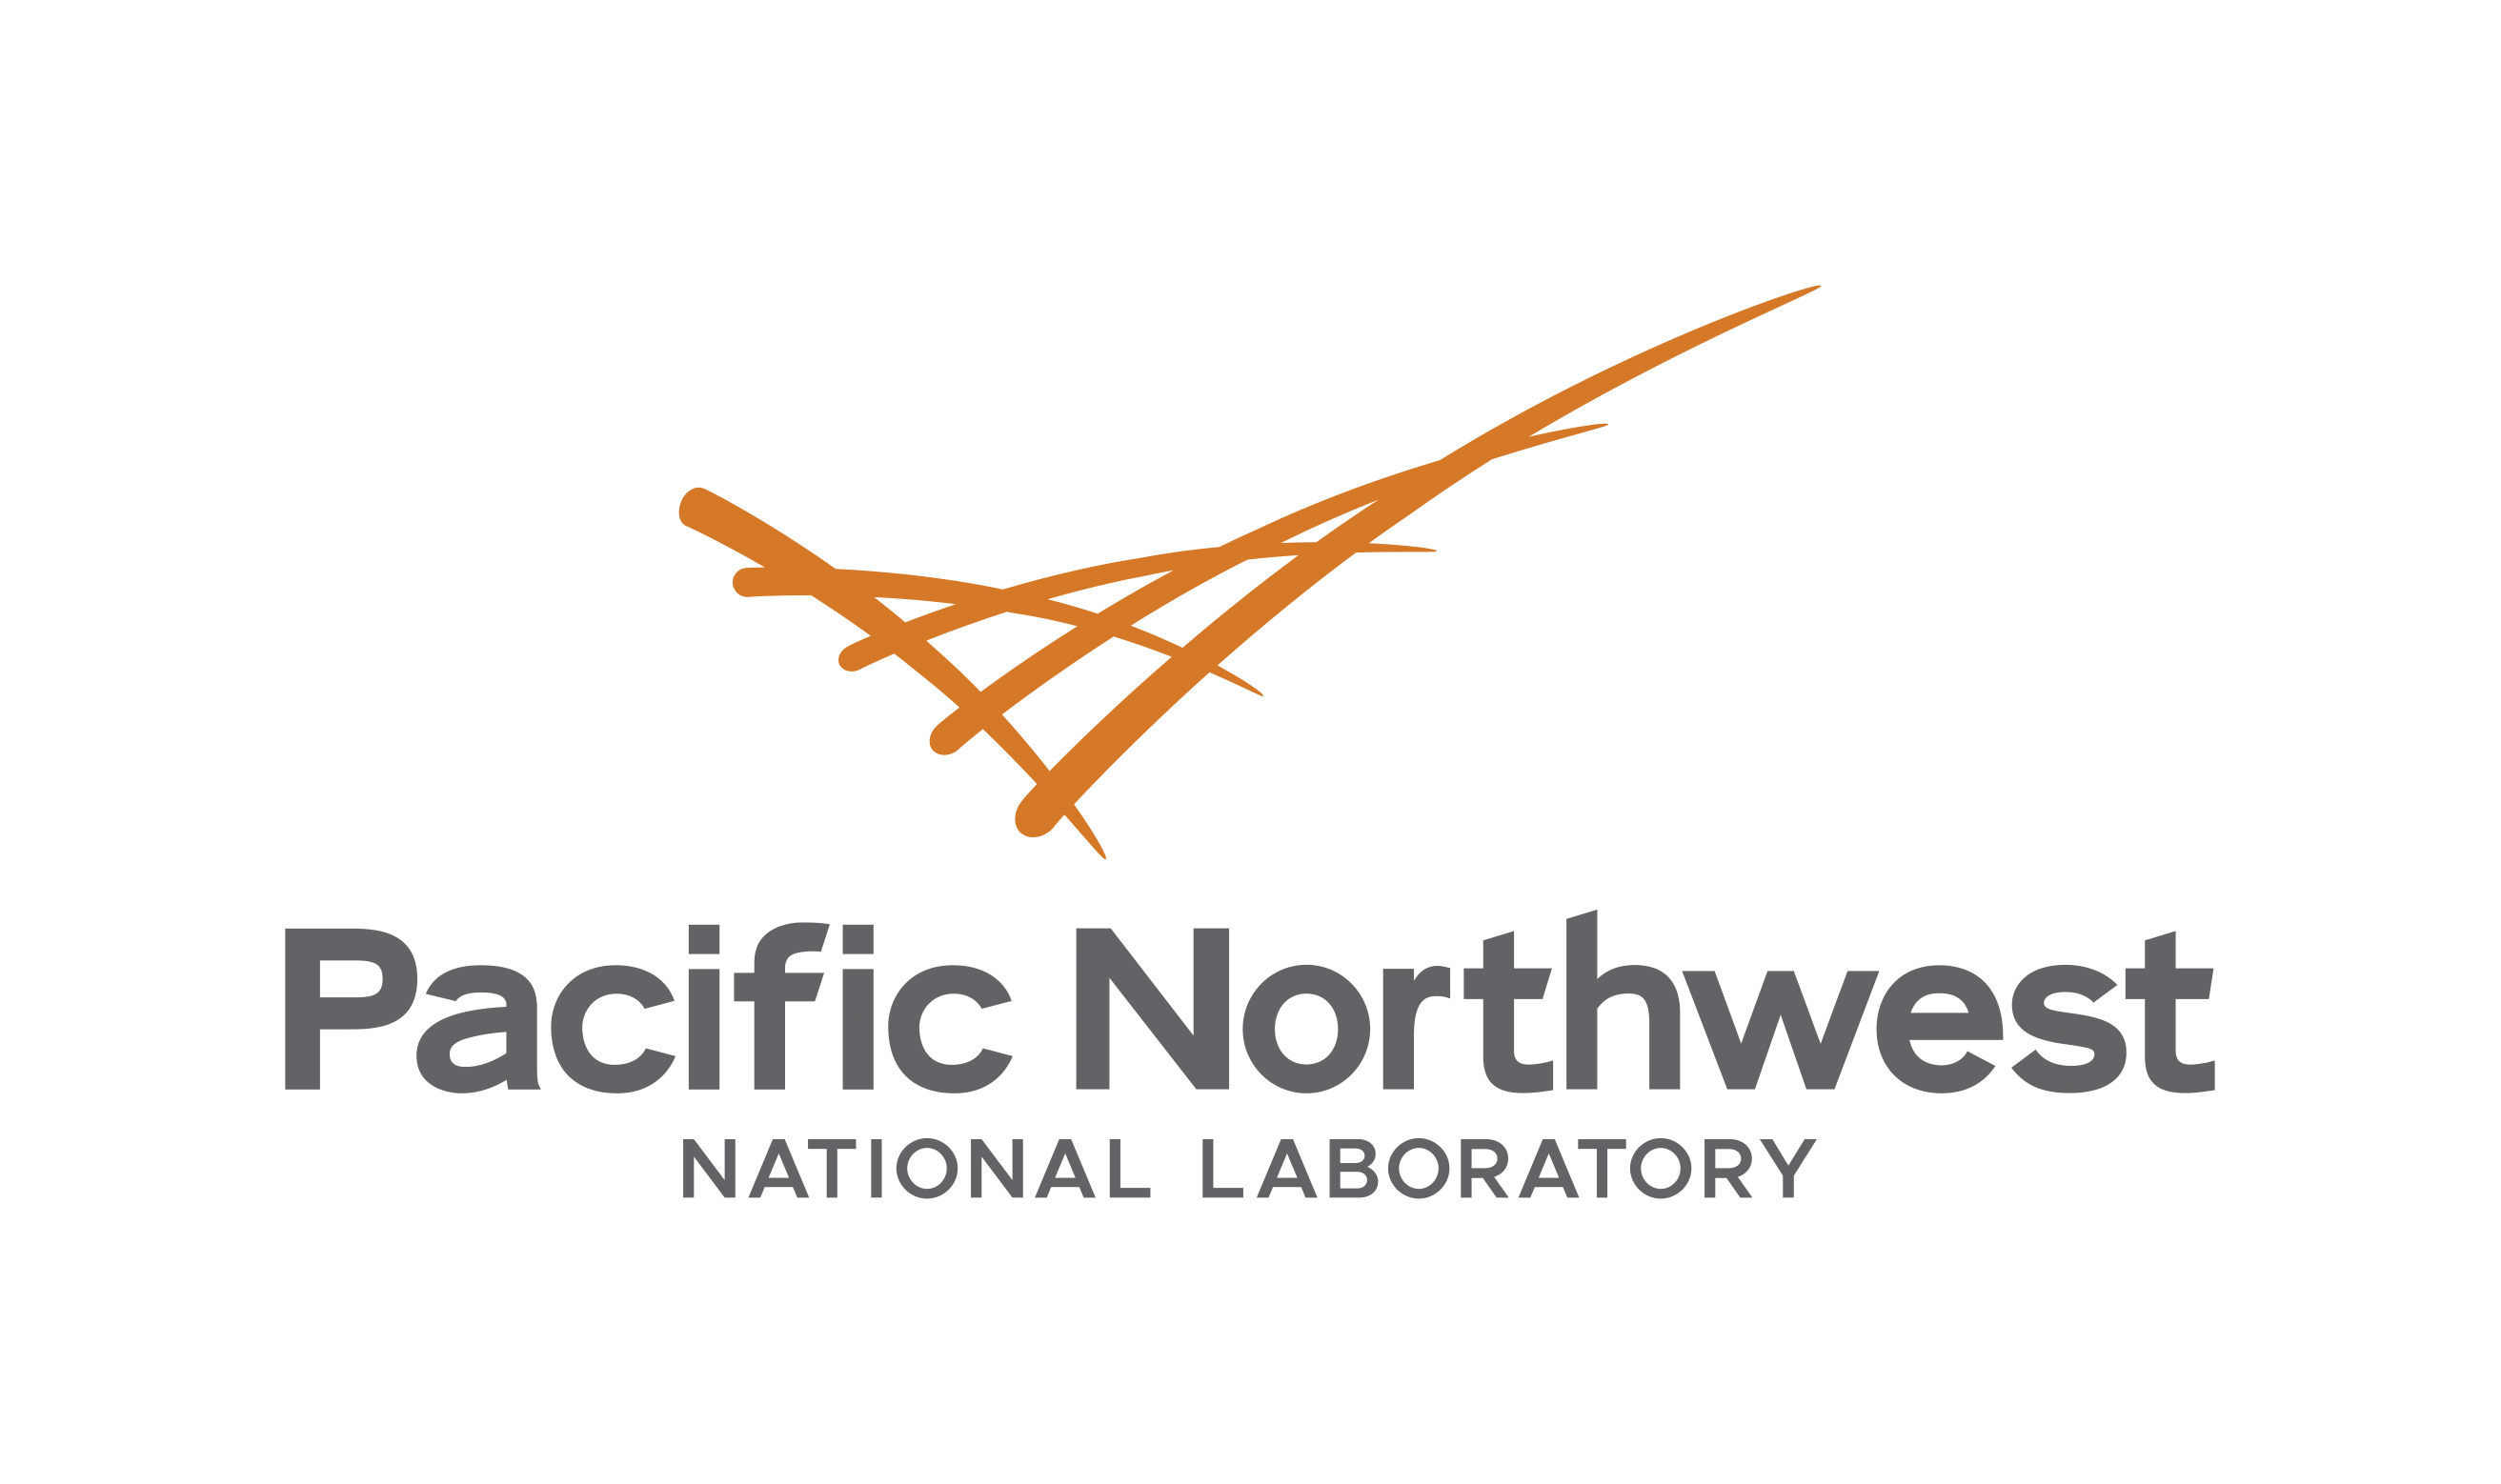 PNNL_Centered_Logo_Color_RGB